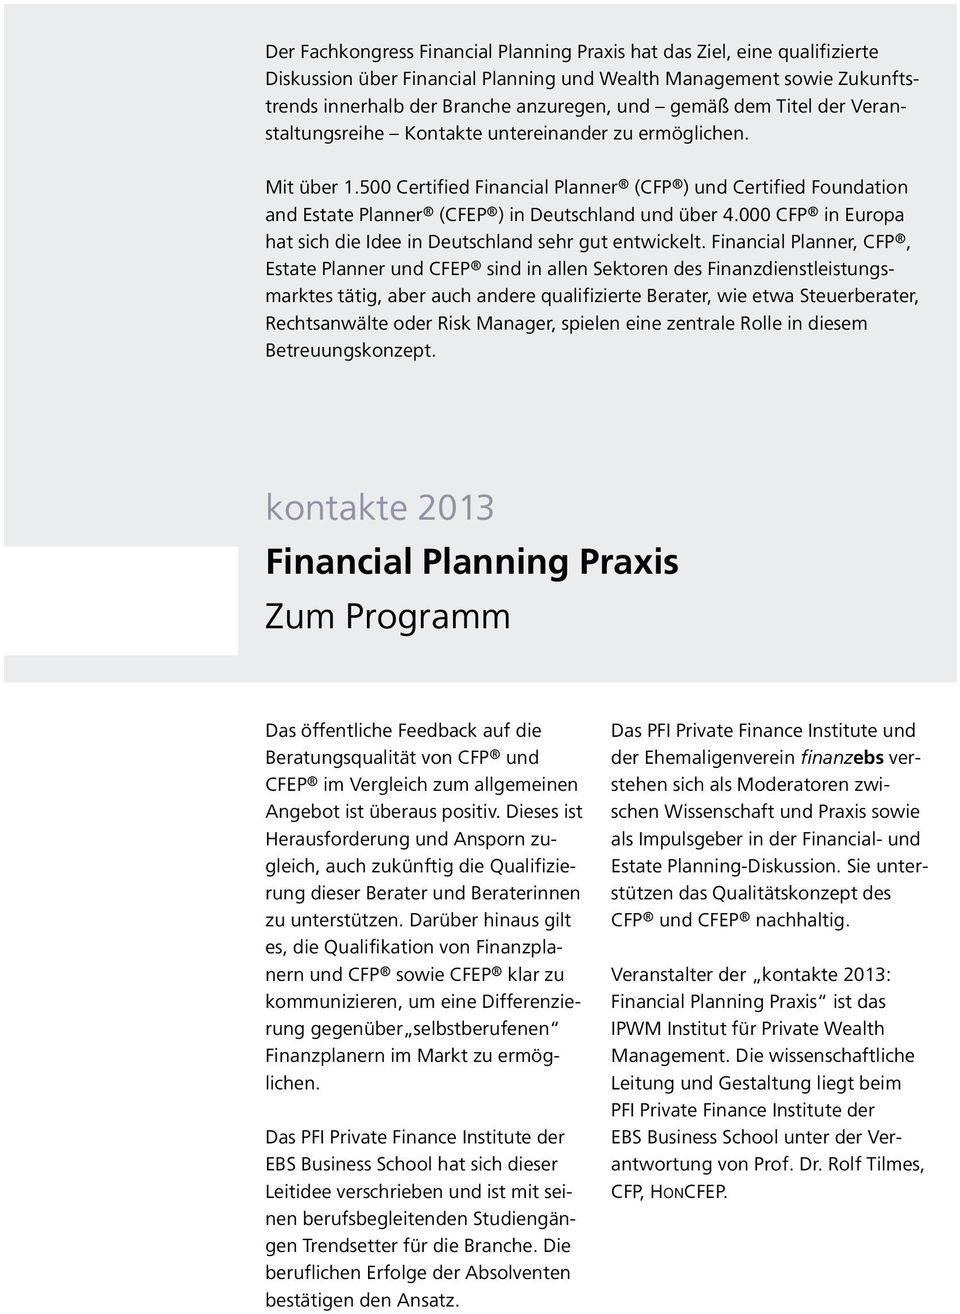 500 Certified Financial Planner (CFP ) und Certified Foundation and Estate Planner (CFEP ) in Deutschland und über 4.000 CFP in Europa hat sich die Idee in Deutschland sehr gut entwickelt.